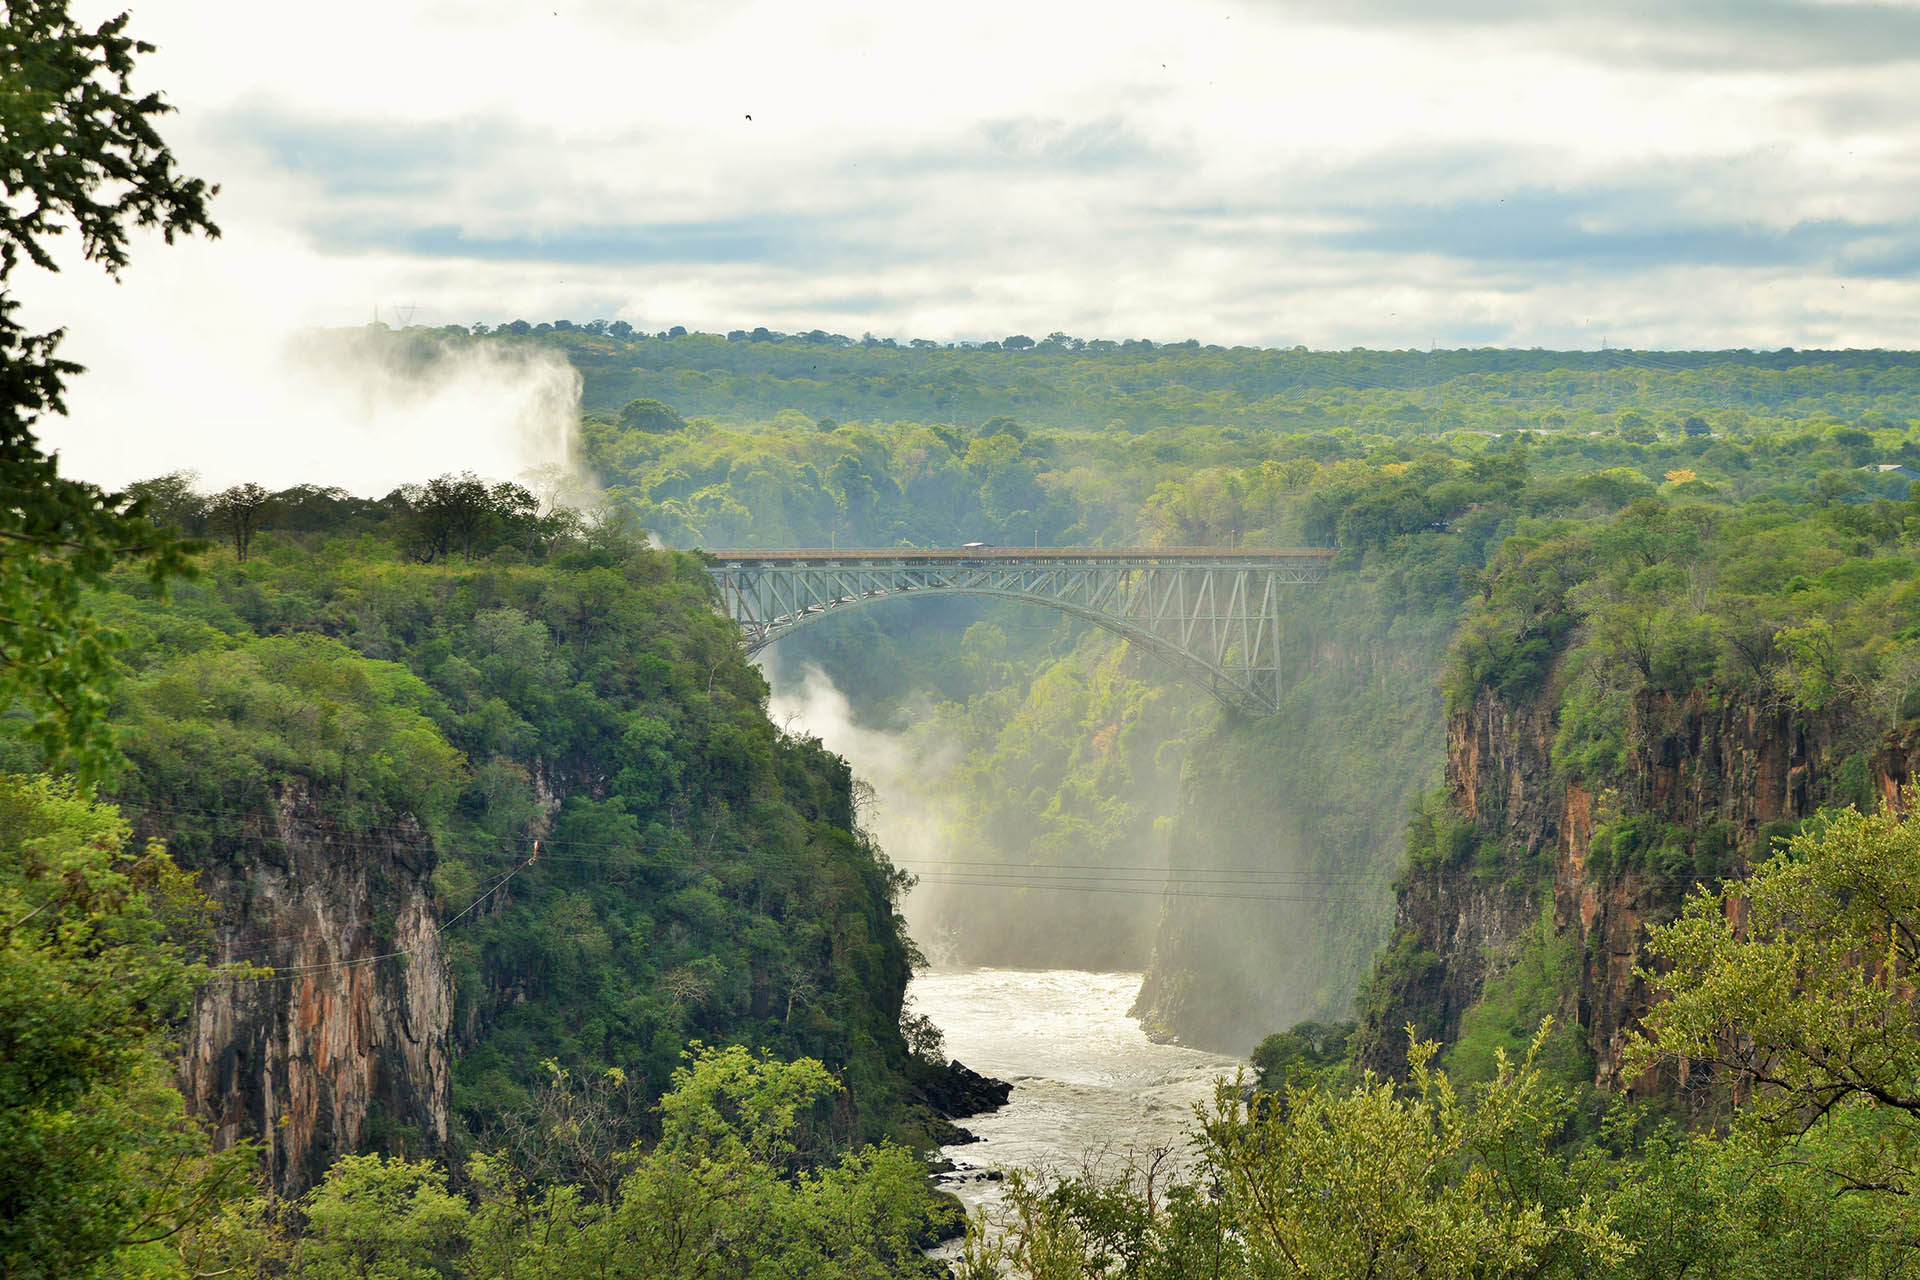 zambia points of interest malawian-style-malawi-adventures-experiences-specialist-tour-operator-vic-falls-view-landscape